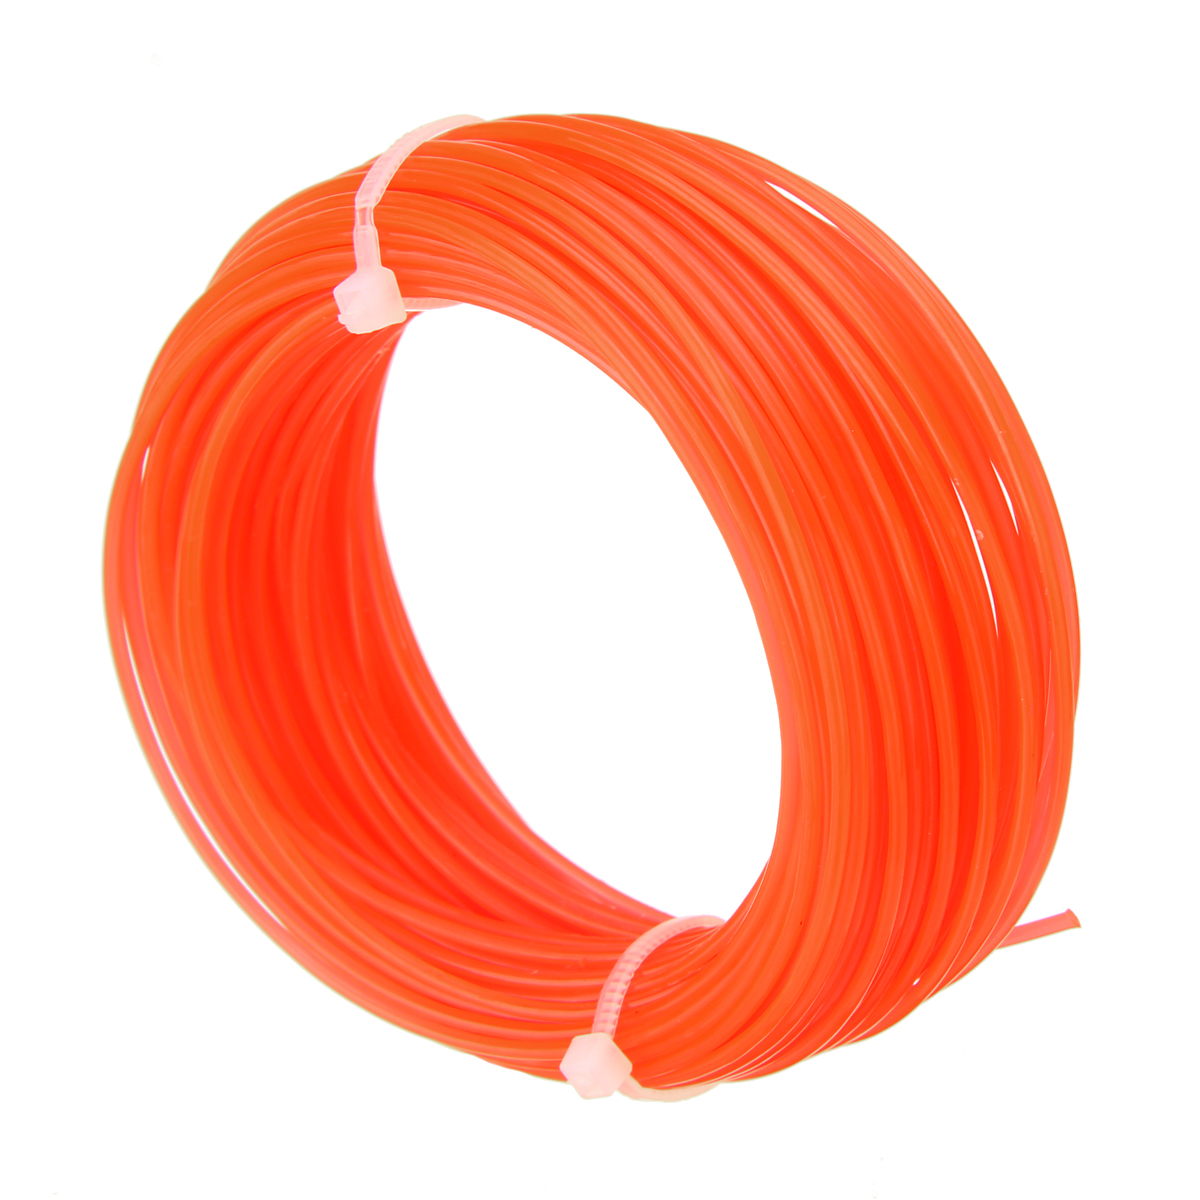 Brush Grass Cutter Power Nylon Line Grass Cutting Weed Cutting Lines Strimmer Tool Accessories 15m X 1.25mm